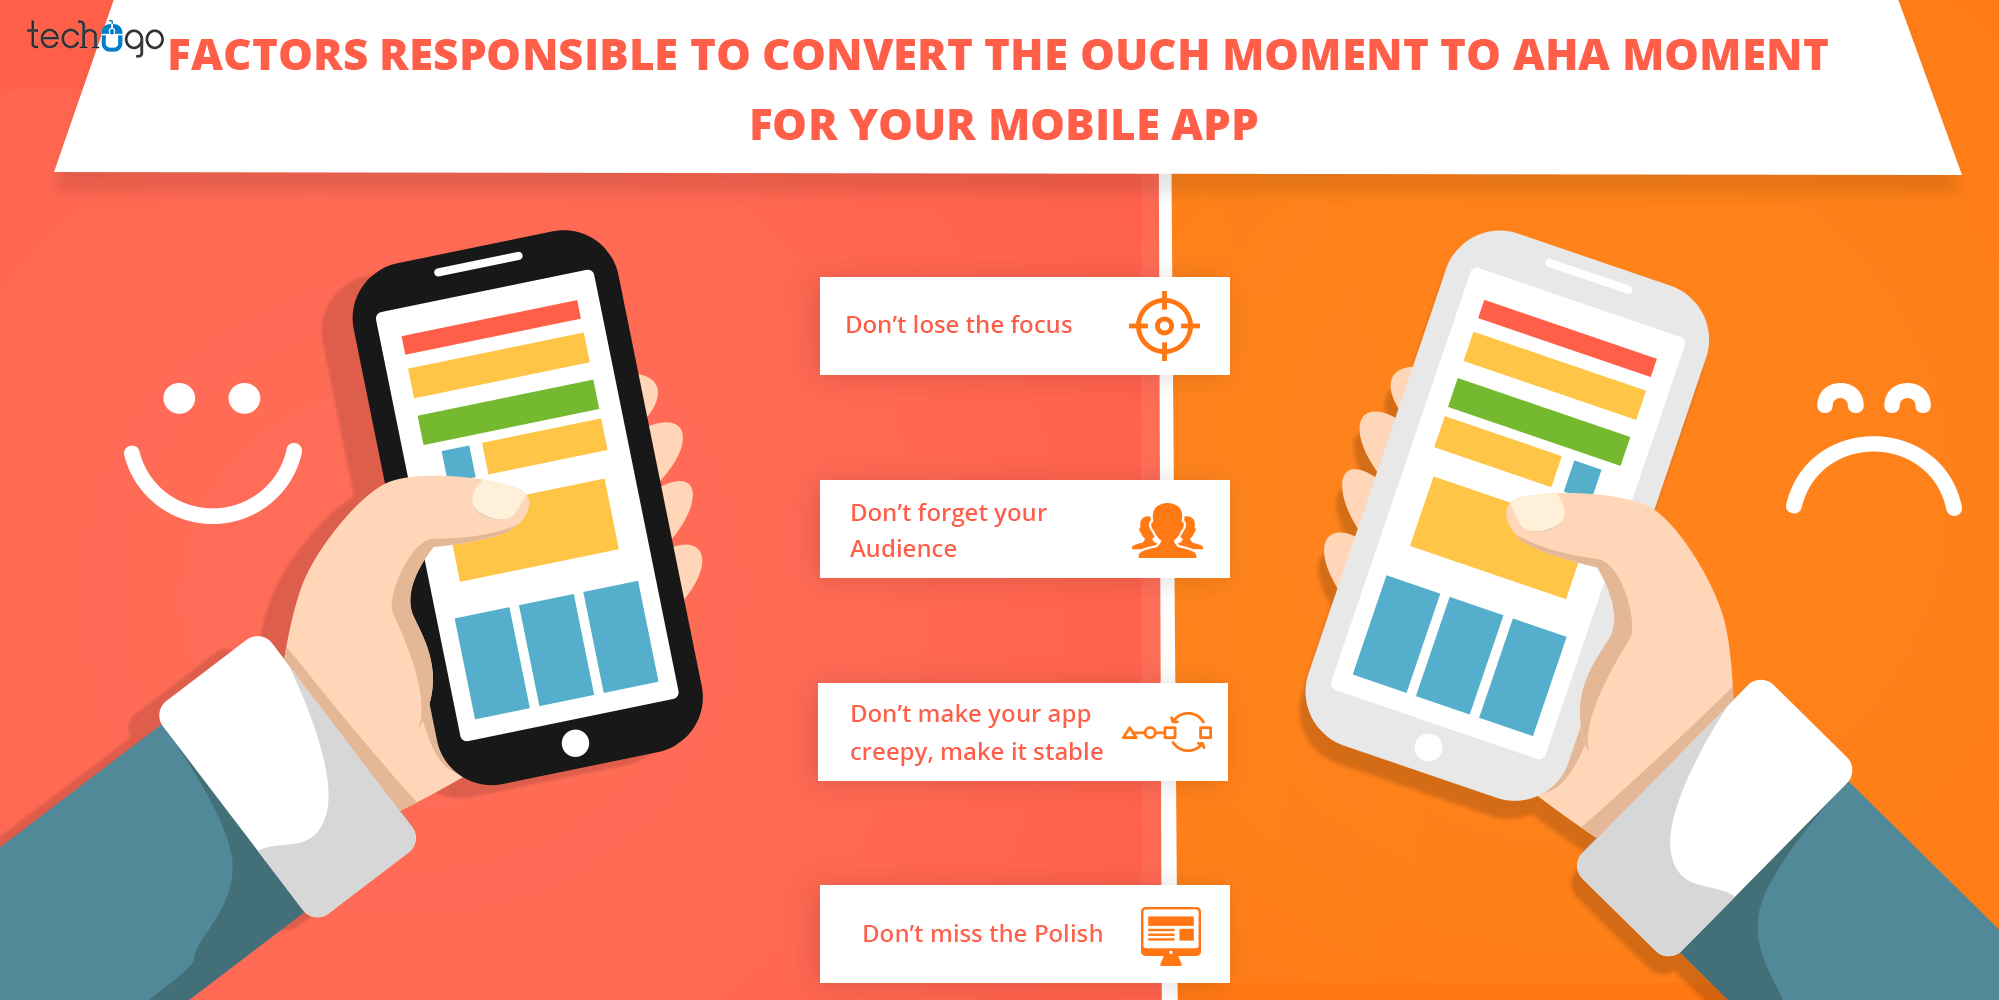 FACTORS RESPONSIBLE TO CONVERT THE OUCH MOMENT TO AHA MOMENT FOR YOUR MOBILE APP